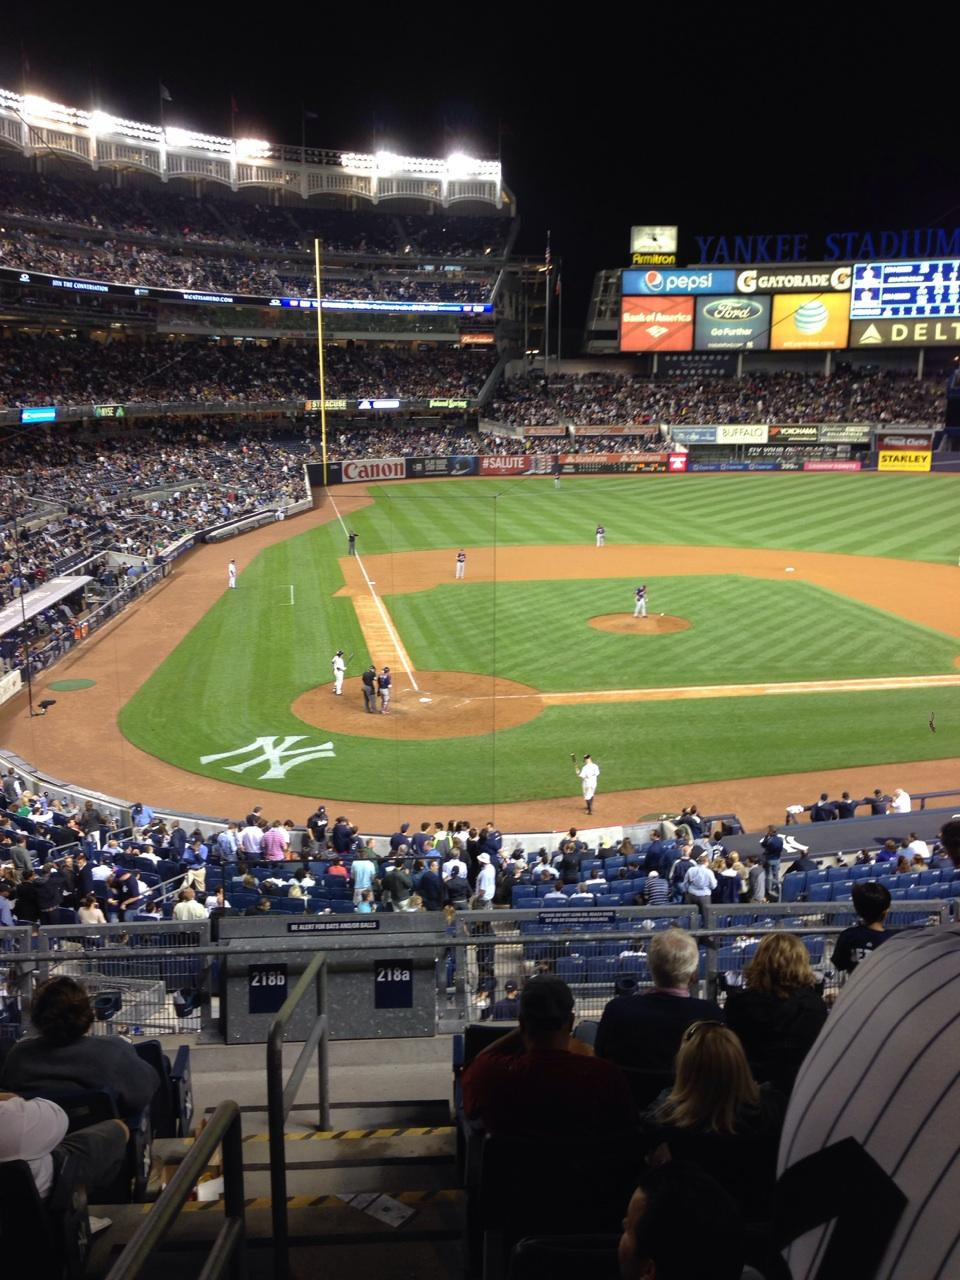 Yankee Stadium Section 218a Row 8 Seat 13